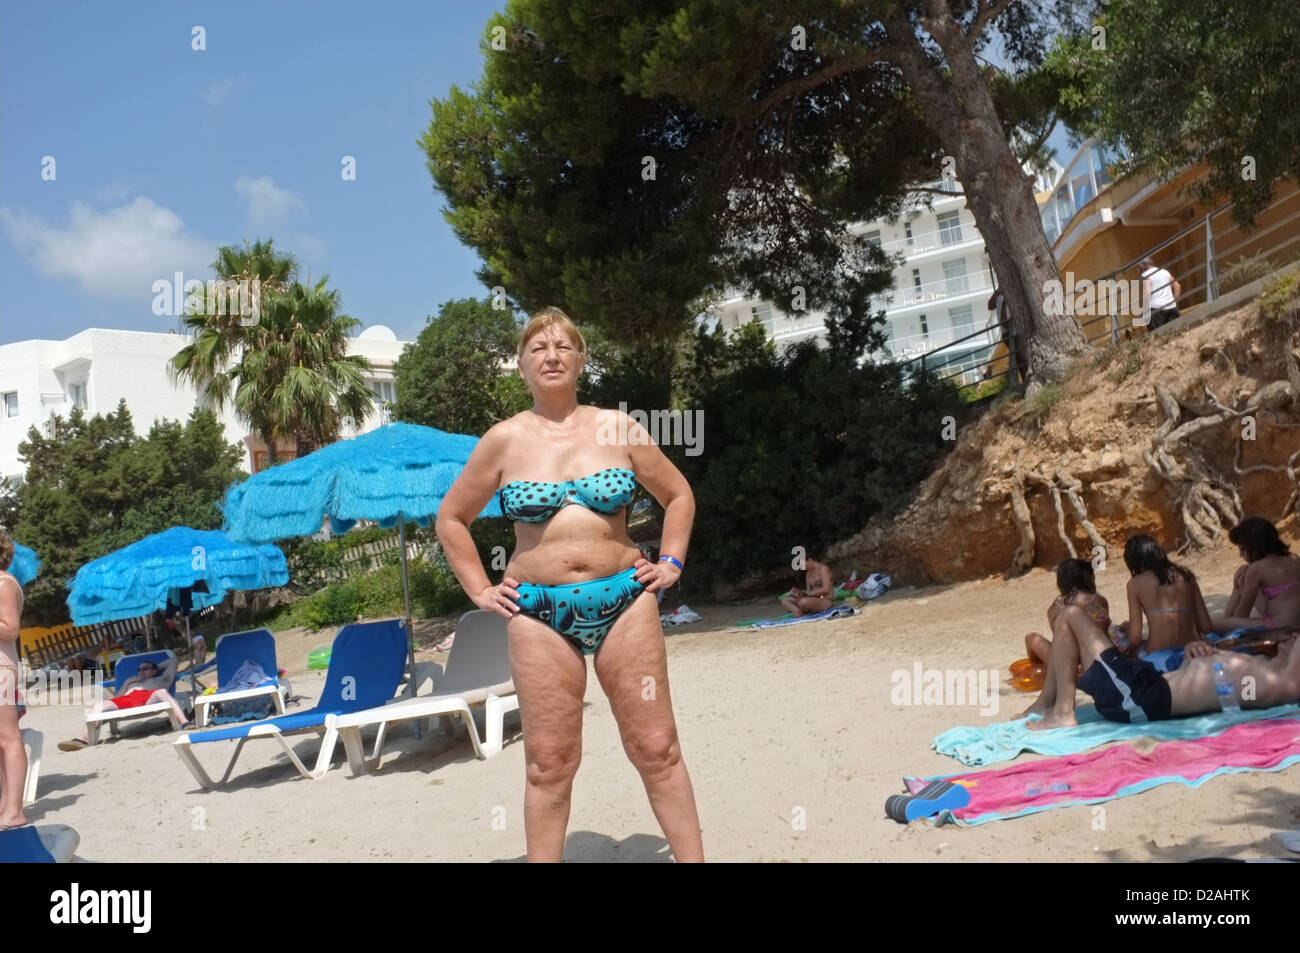 A middle-aged sunbather in Ibiza - Stock Image